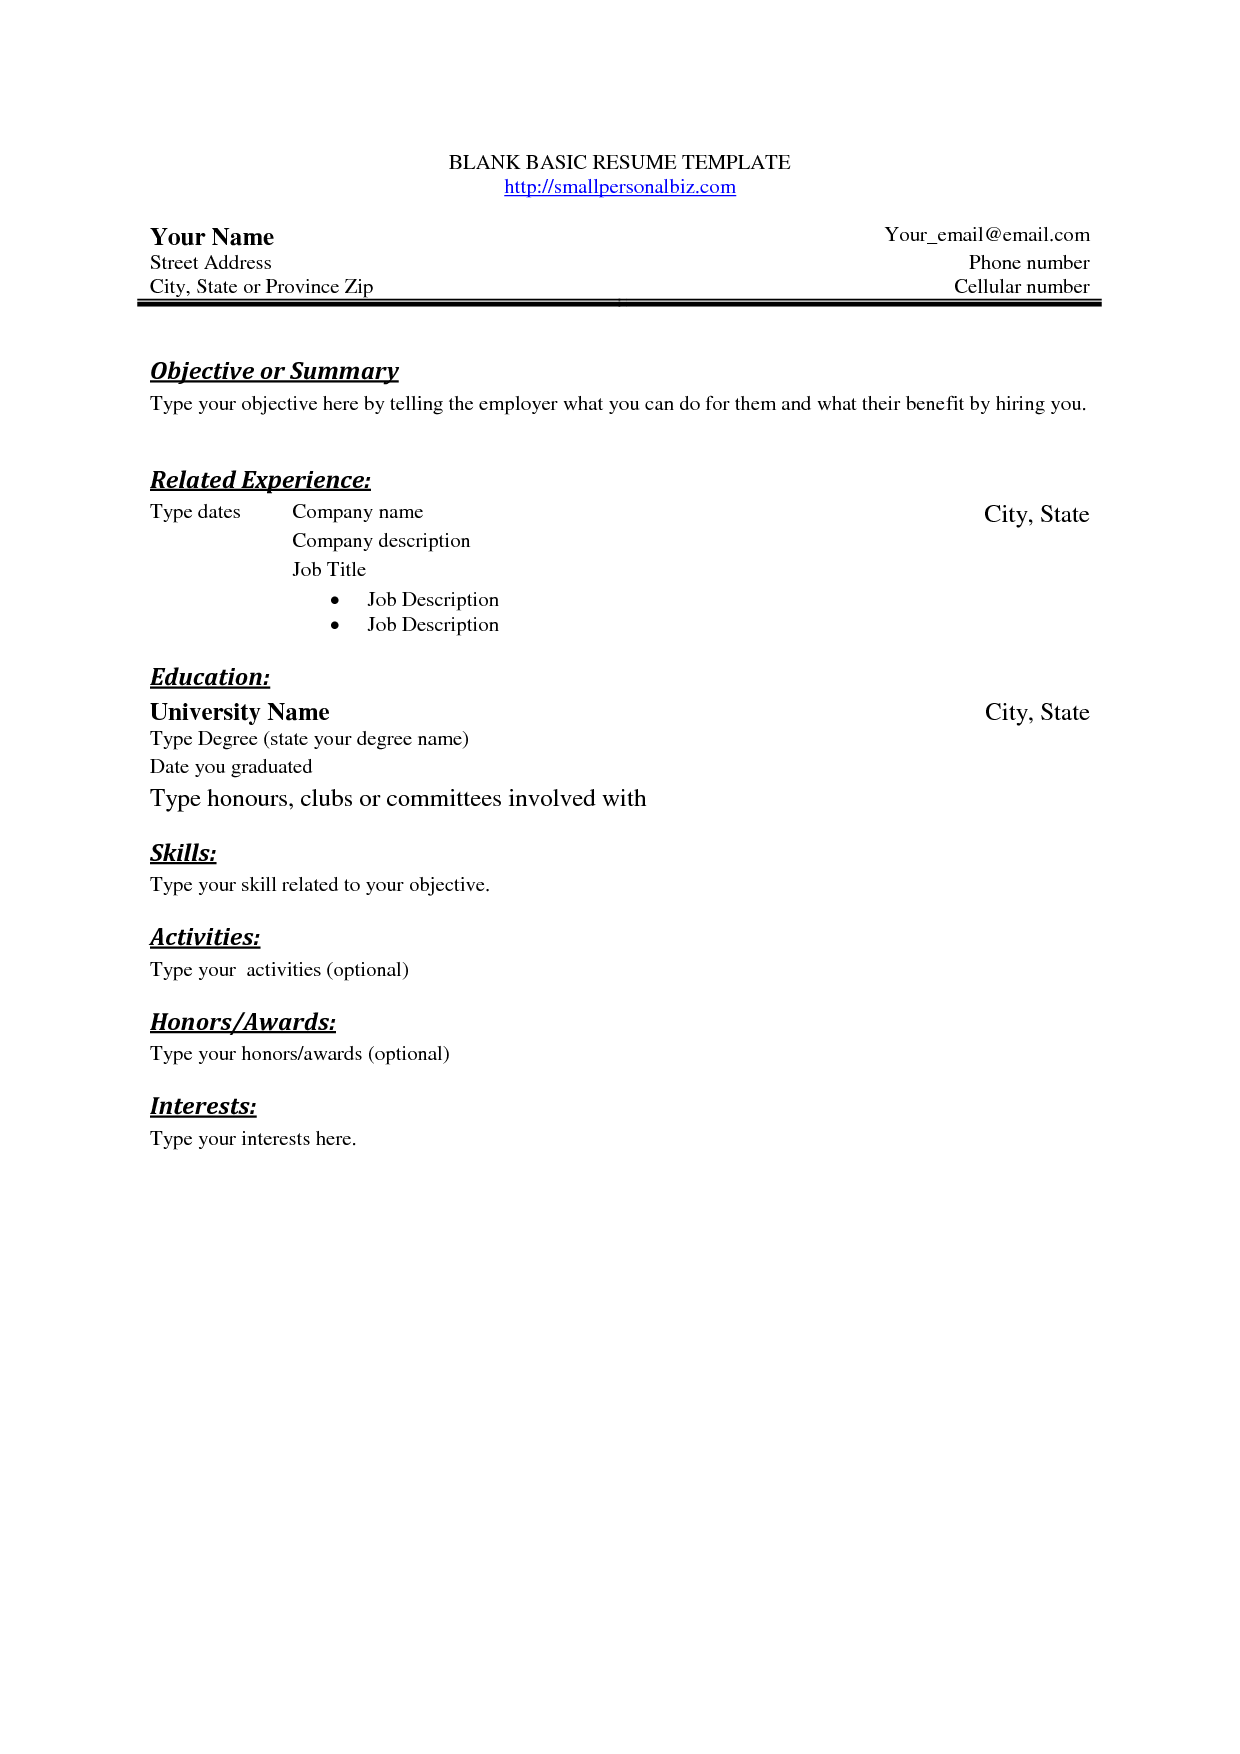 Free Basic Blank Resume Template  Free Basic Sample